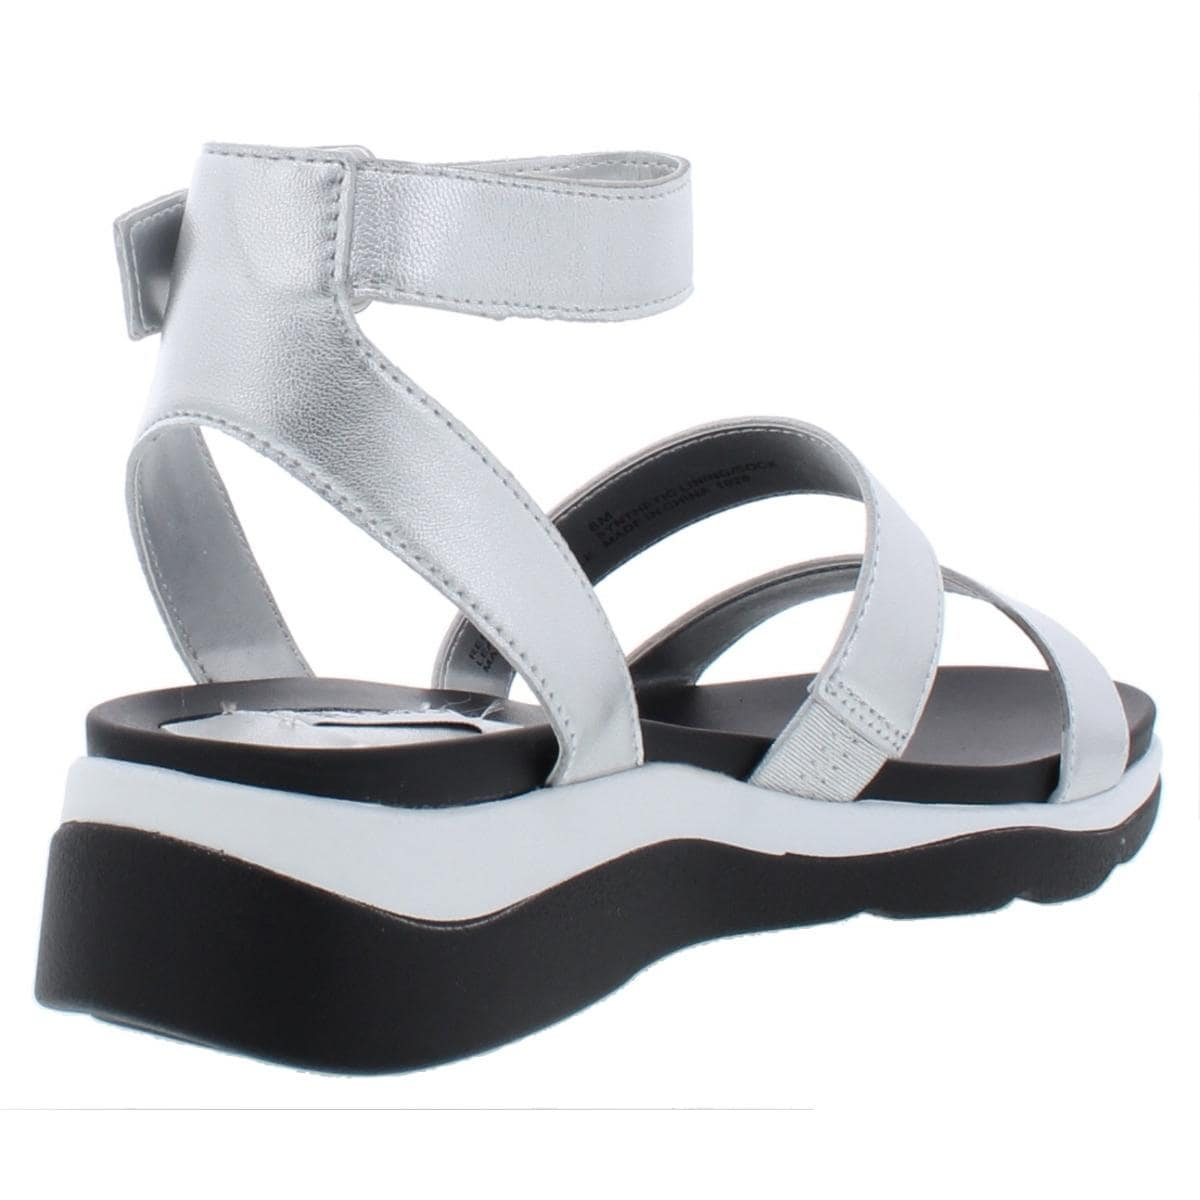 0384bb40f1b Shop Steve Madden Womens Relish Sport Sandals Leather Wedge - Free Shipping  On Orders Over  45 - Overstock - 27568202